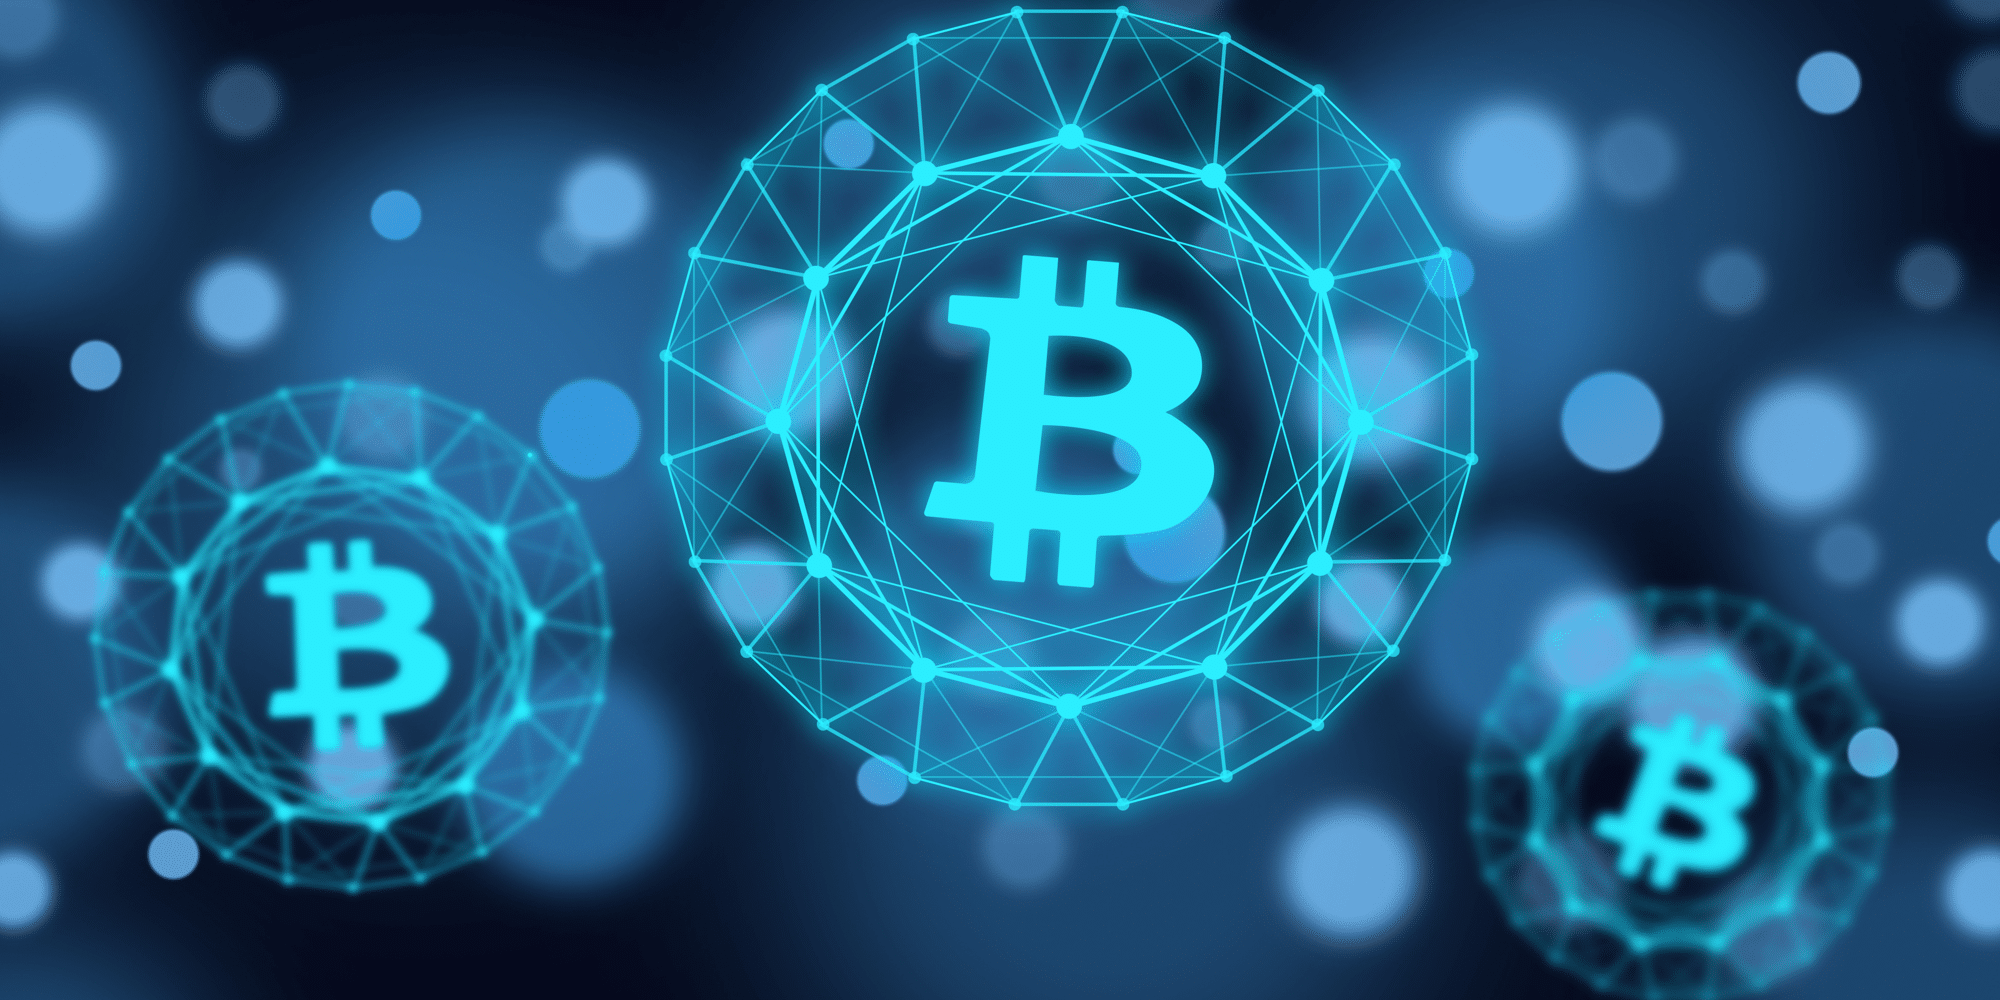 download 65 Bitcoin HD Wallpapers Background Images 2000x1000